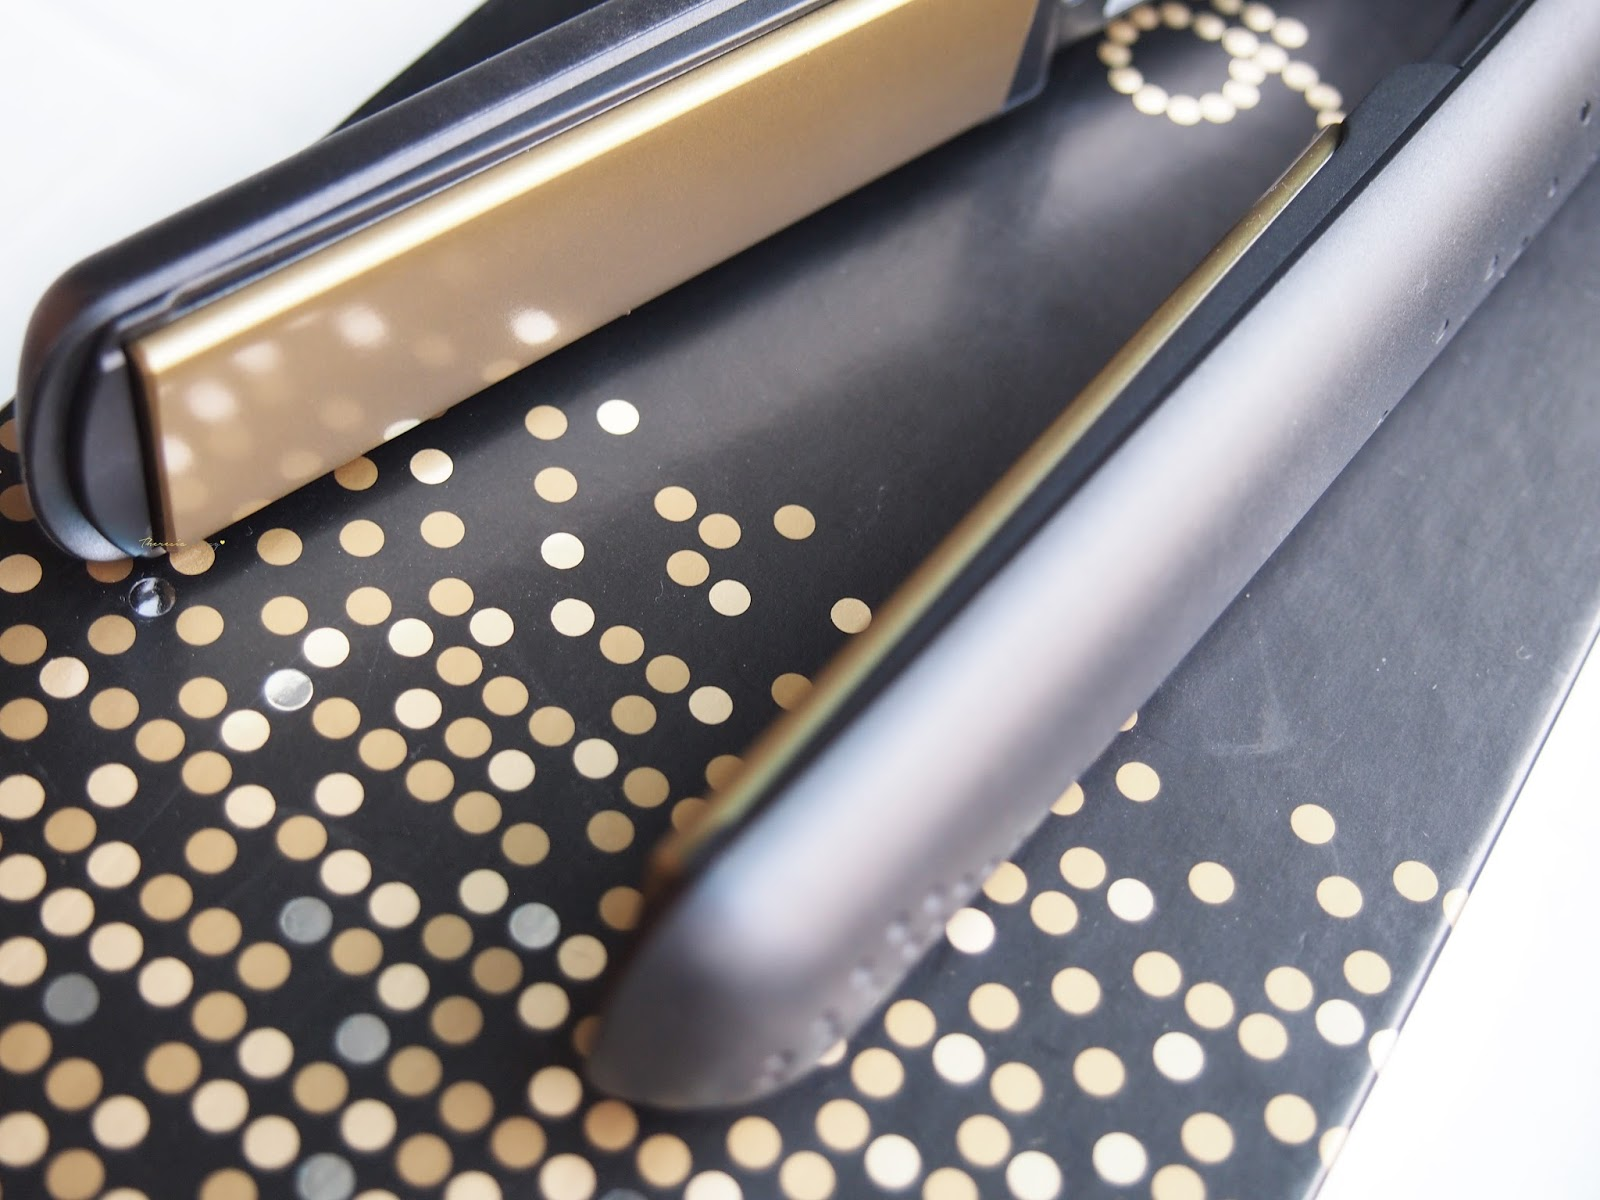 How to Clean a ghd Hair Straightener